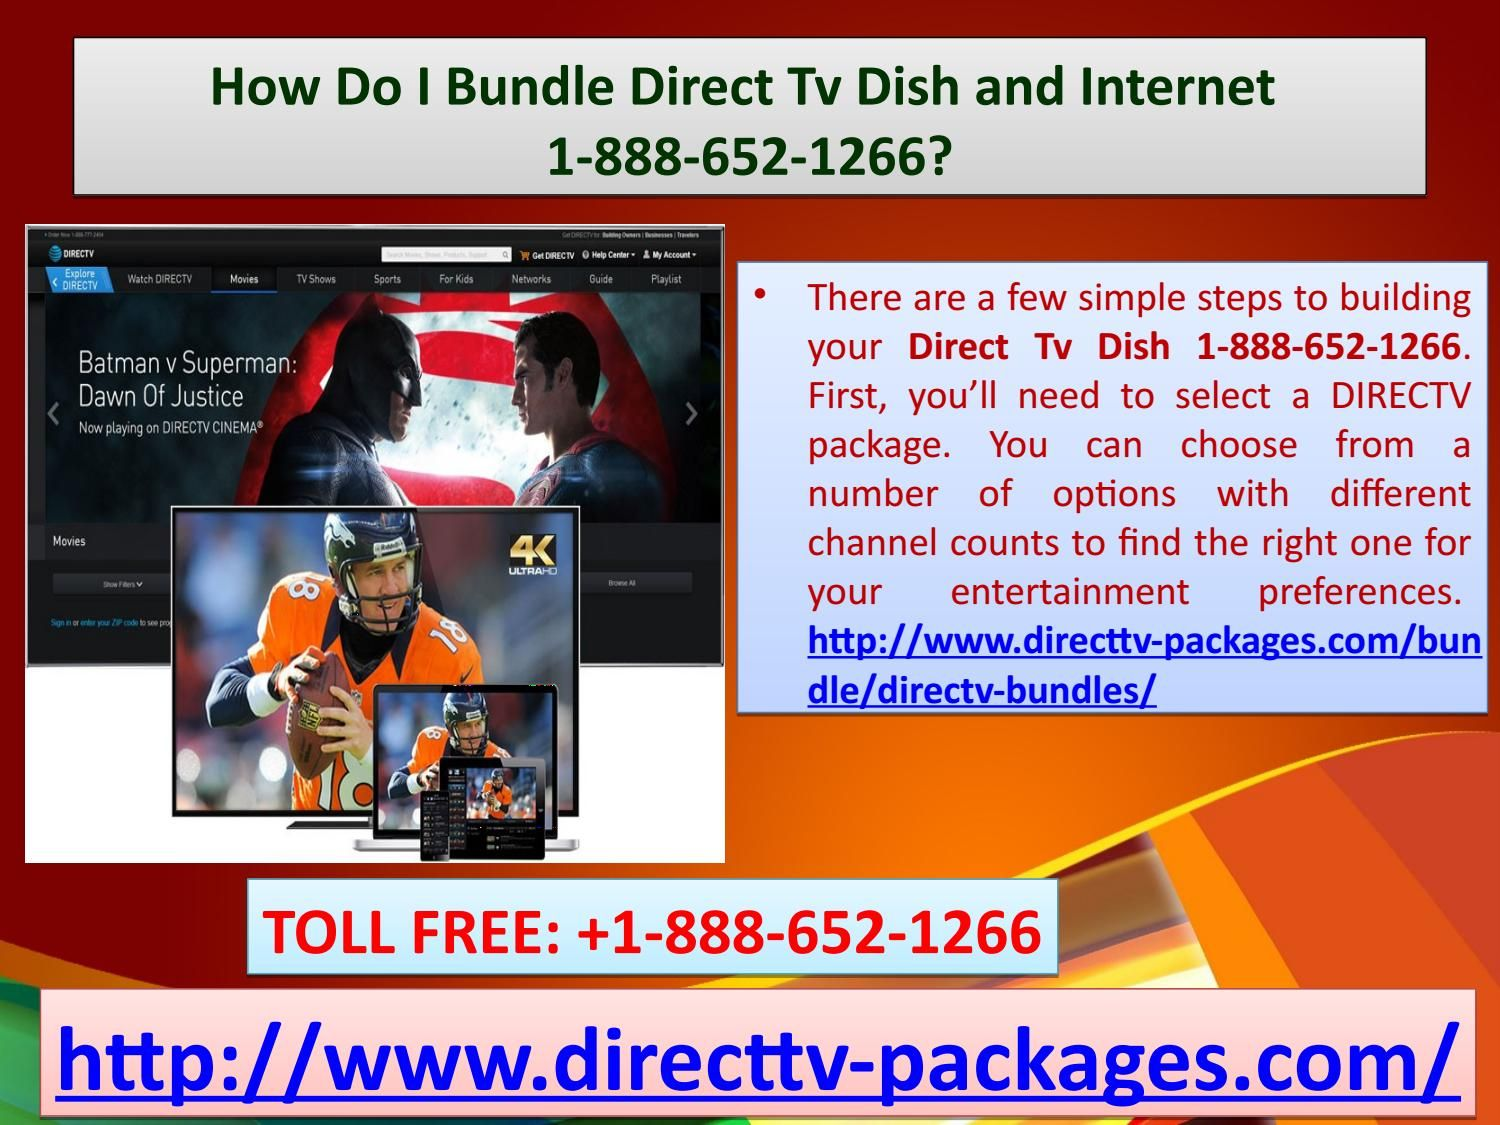 How Do I Bundle Direct Tv Dish and 18886521266